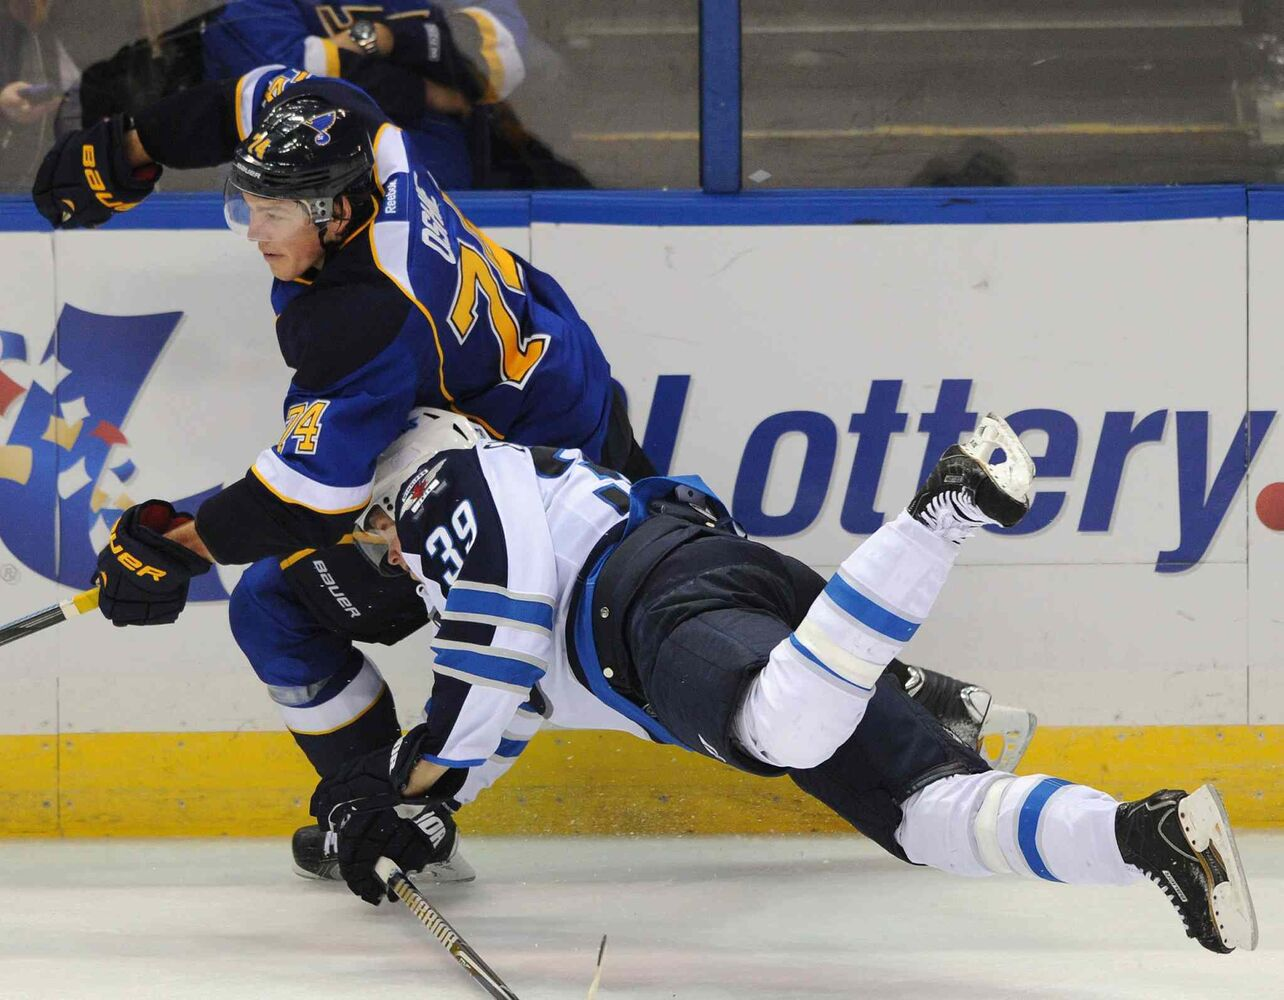 Winnipeg Jets defenceman Tobias Enstrom collides with St. Louis Blues forward T.J. Oshie during the third period. (Bill Boyce / the associated press)